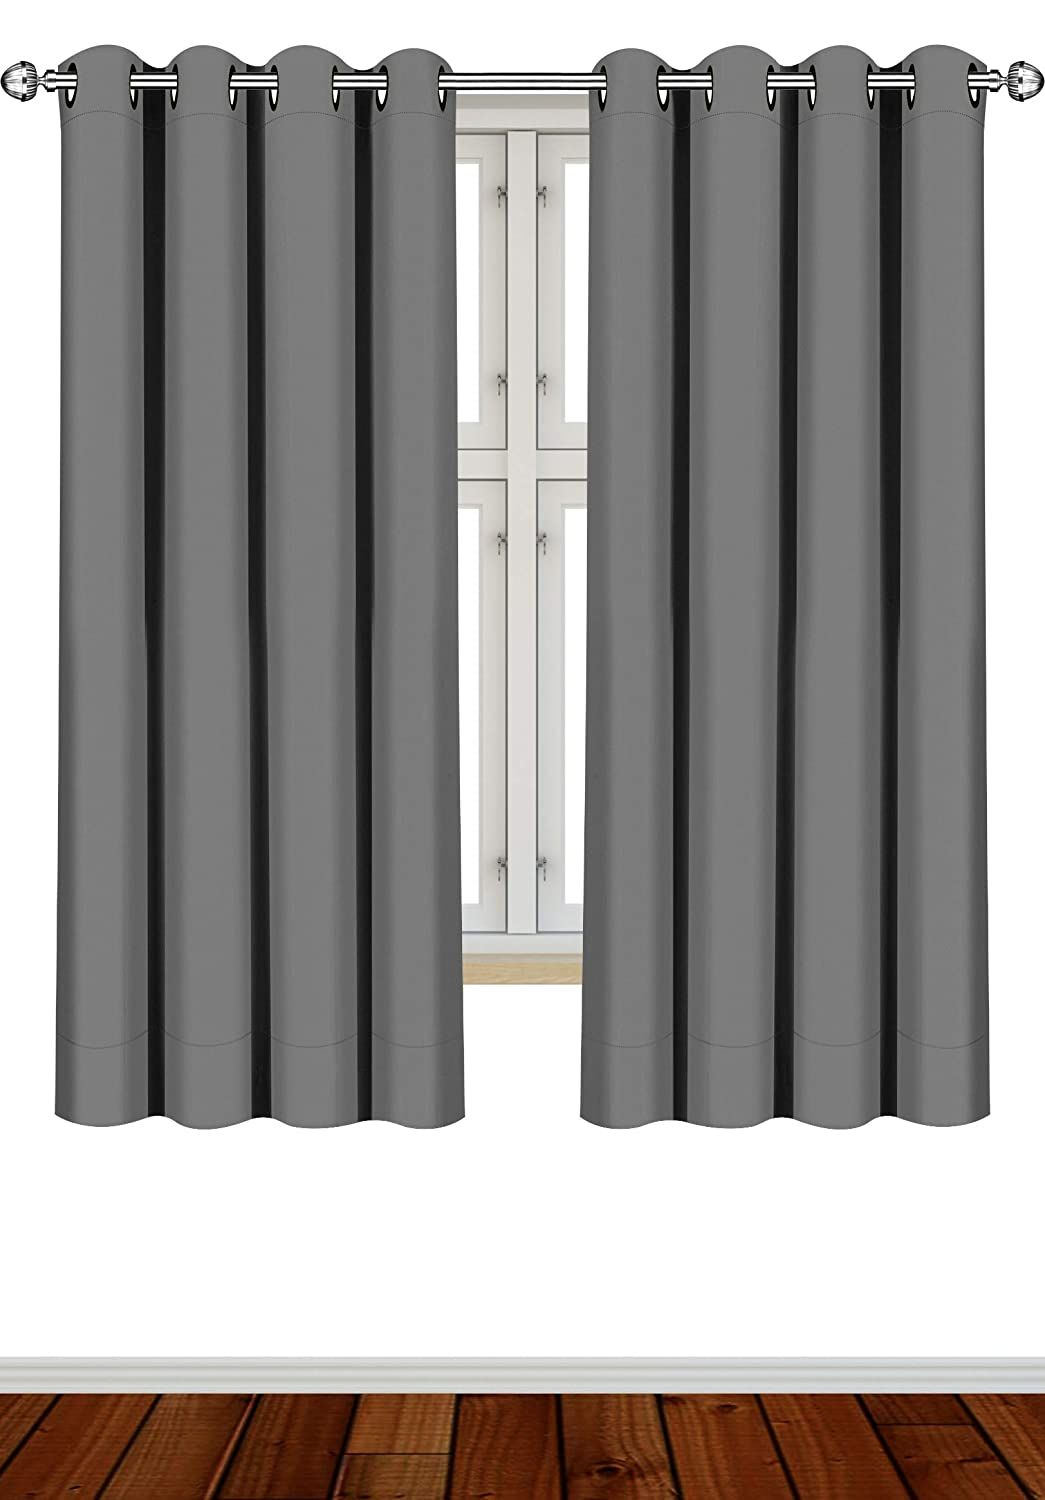 Utopia Bedding 2 Panels Eyelet Blackout Curtains Thermal Insulated for Bedroom, 46 x 54 Inches, Grey